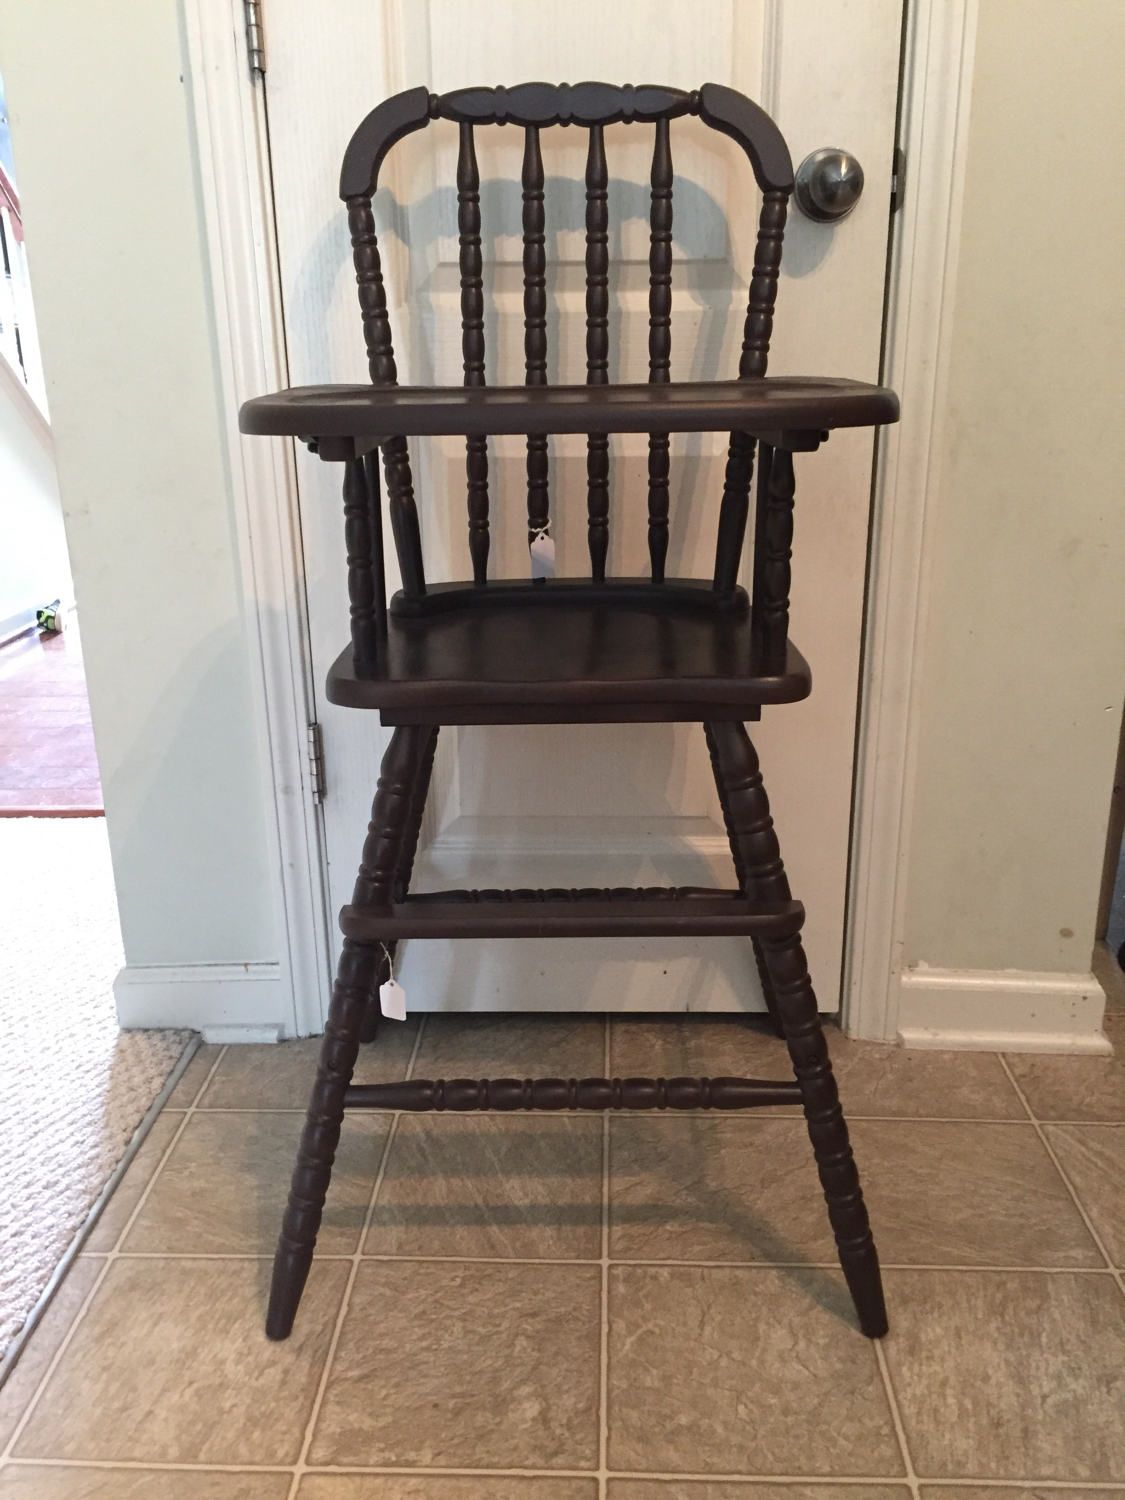 Painted wood high chair - Reserved Chocolate Color Vintage Wooden High Chair Jenny Lind Antique High Chair Vintage High Chair Custom Painted High Chair Wood